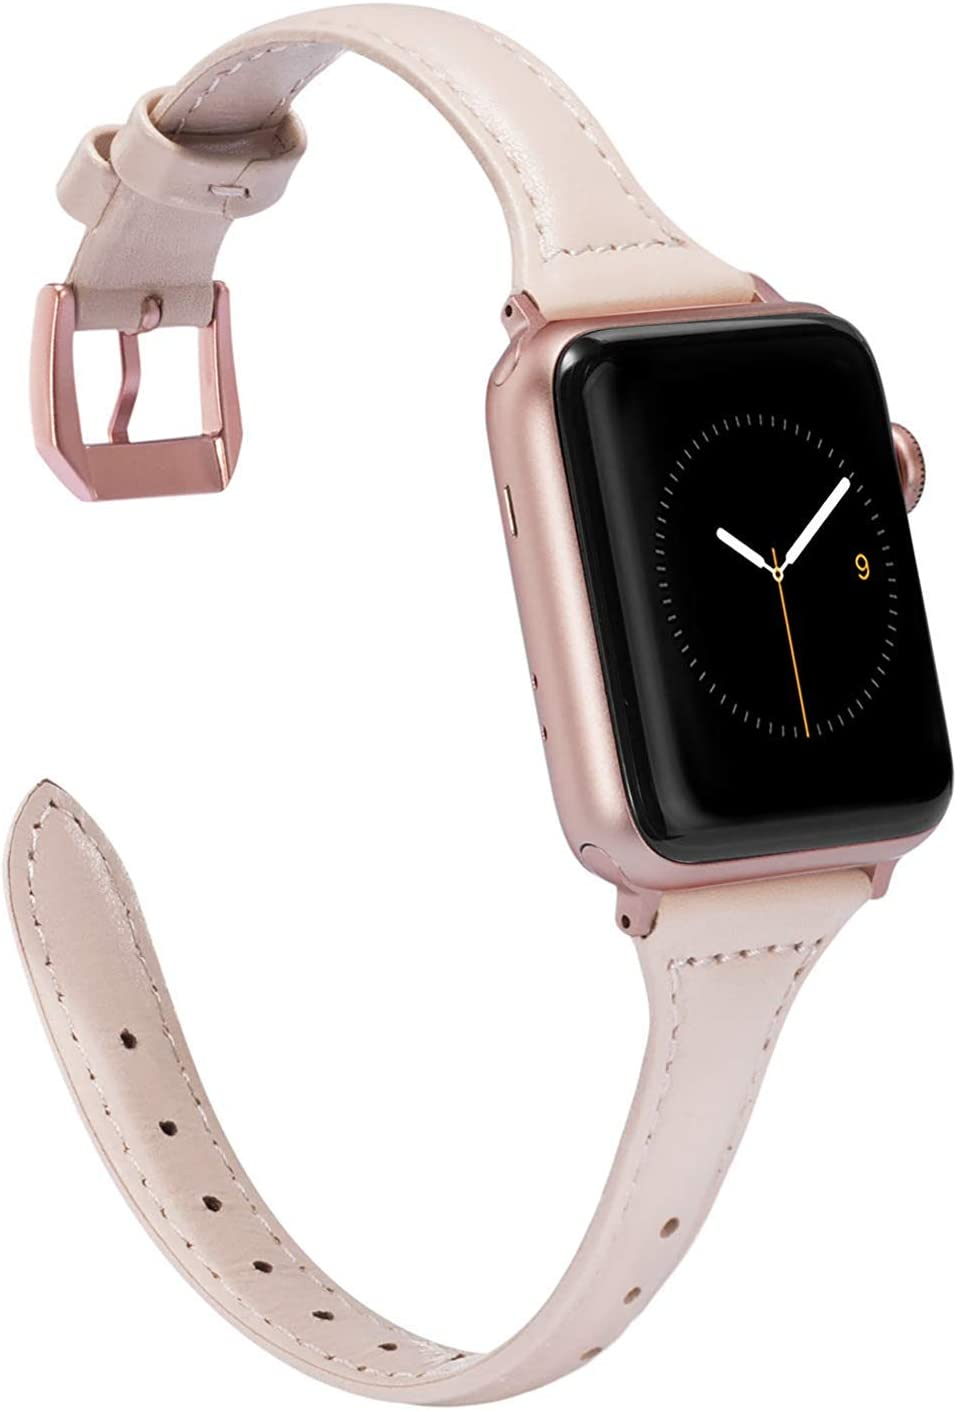 Wearlizer Nude Pink Thin Leather Compatible with Apple Watch Band 38mm 40mm for iWatch SE Womens Slim Strap Wristband Leisure Small Replacement (Rose Gold Metal Clasp) Series 6 5 4 3 2 1 Sport